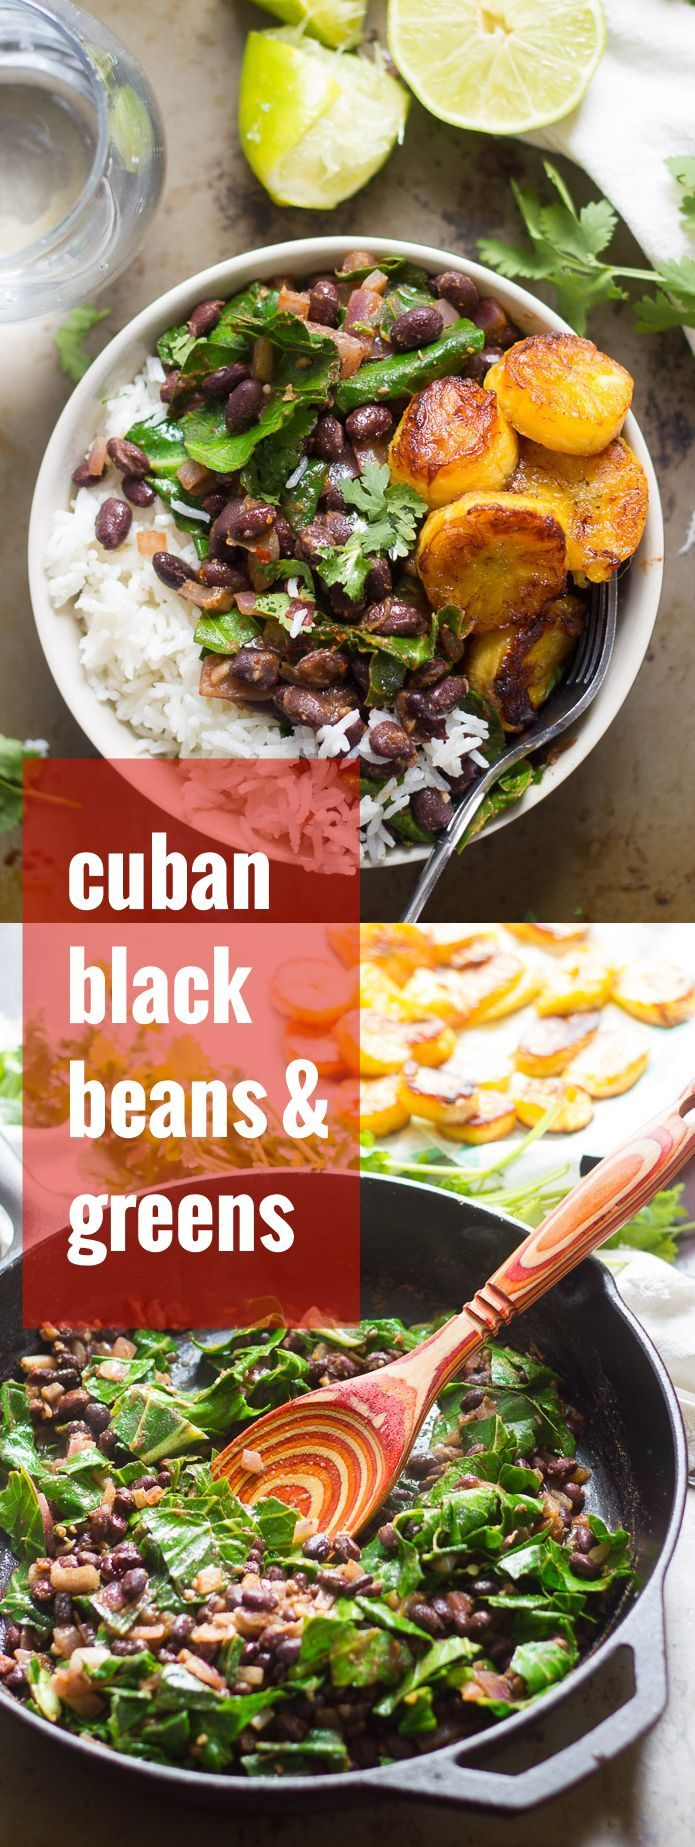 Black beans are simmered up with cumin and lime, then served over rice with sweet pan-fried plantains to make this mouthwatering